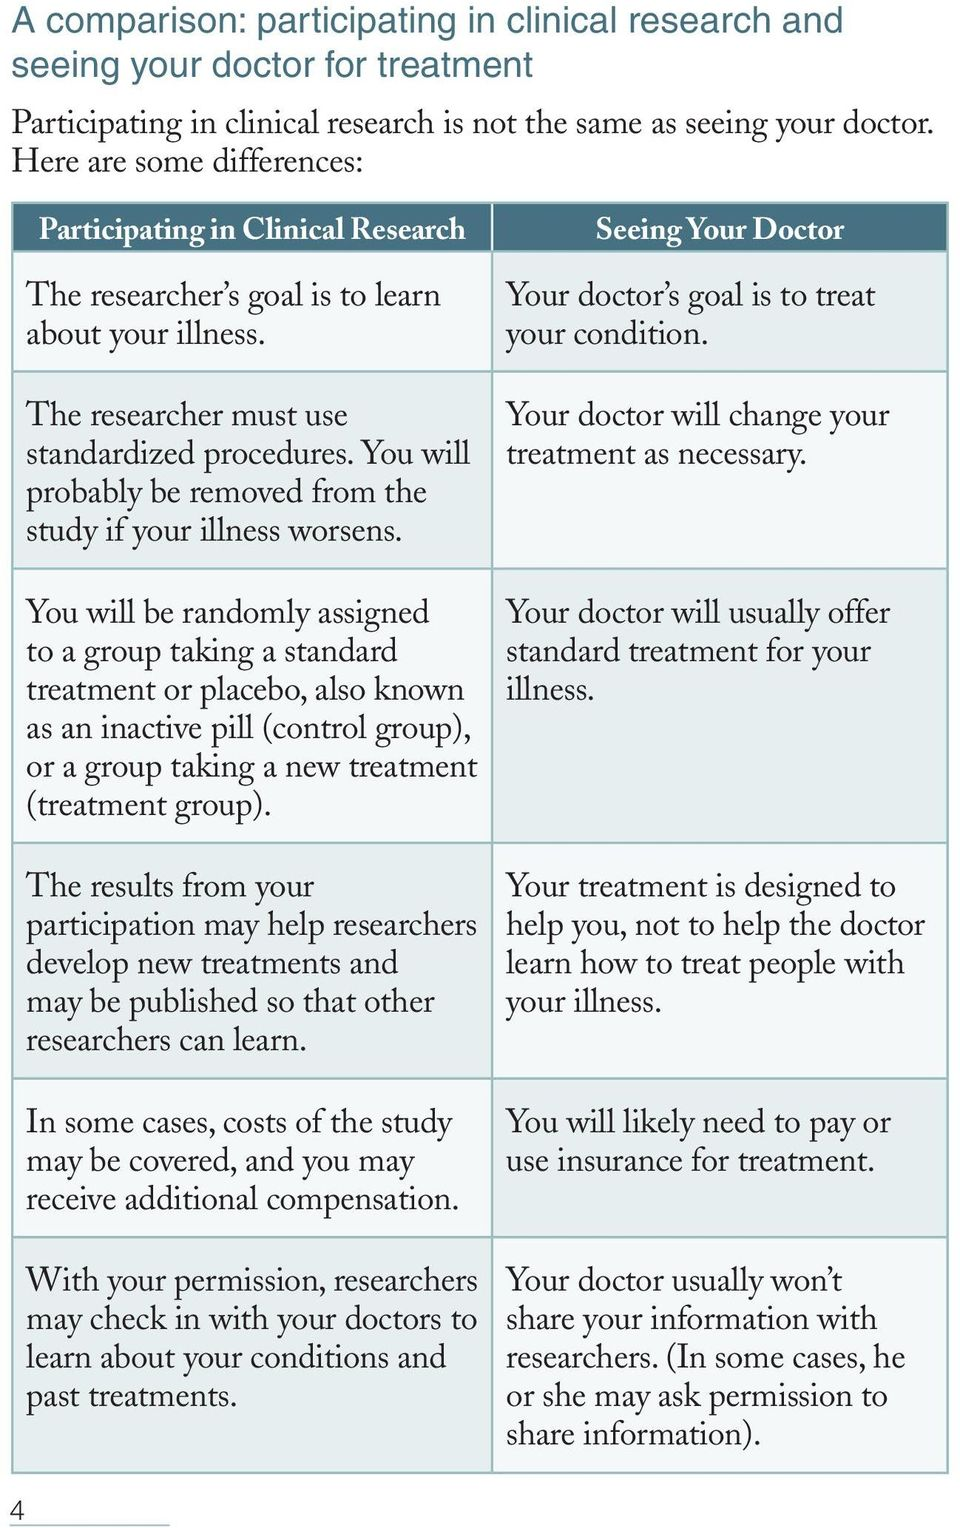 You will probably be removed from the study if your illness worsens.